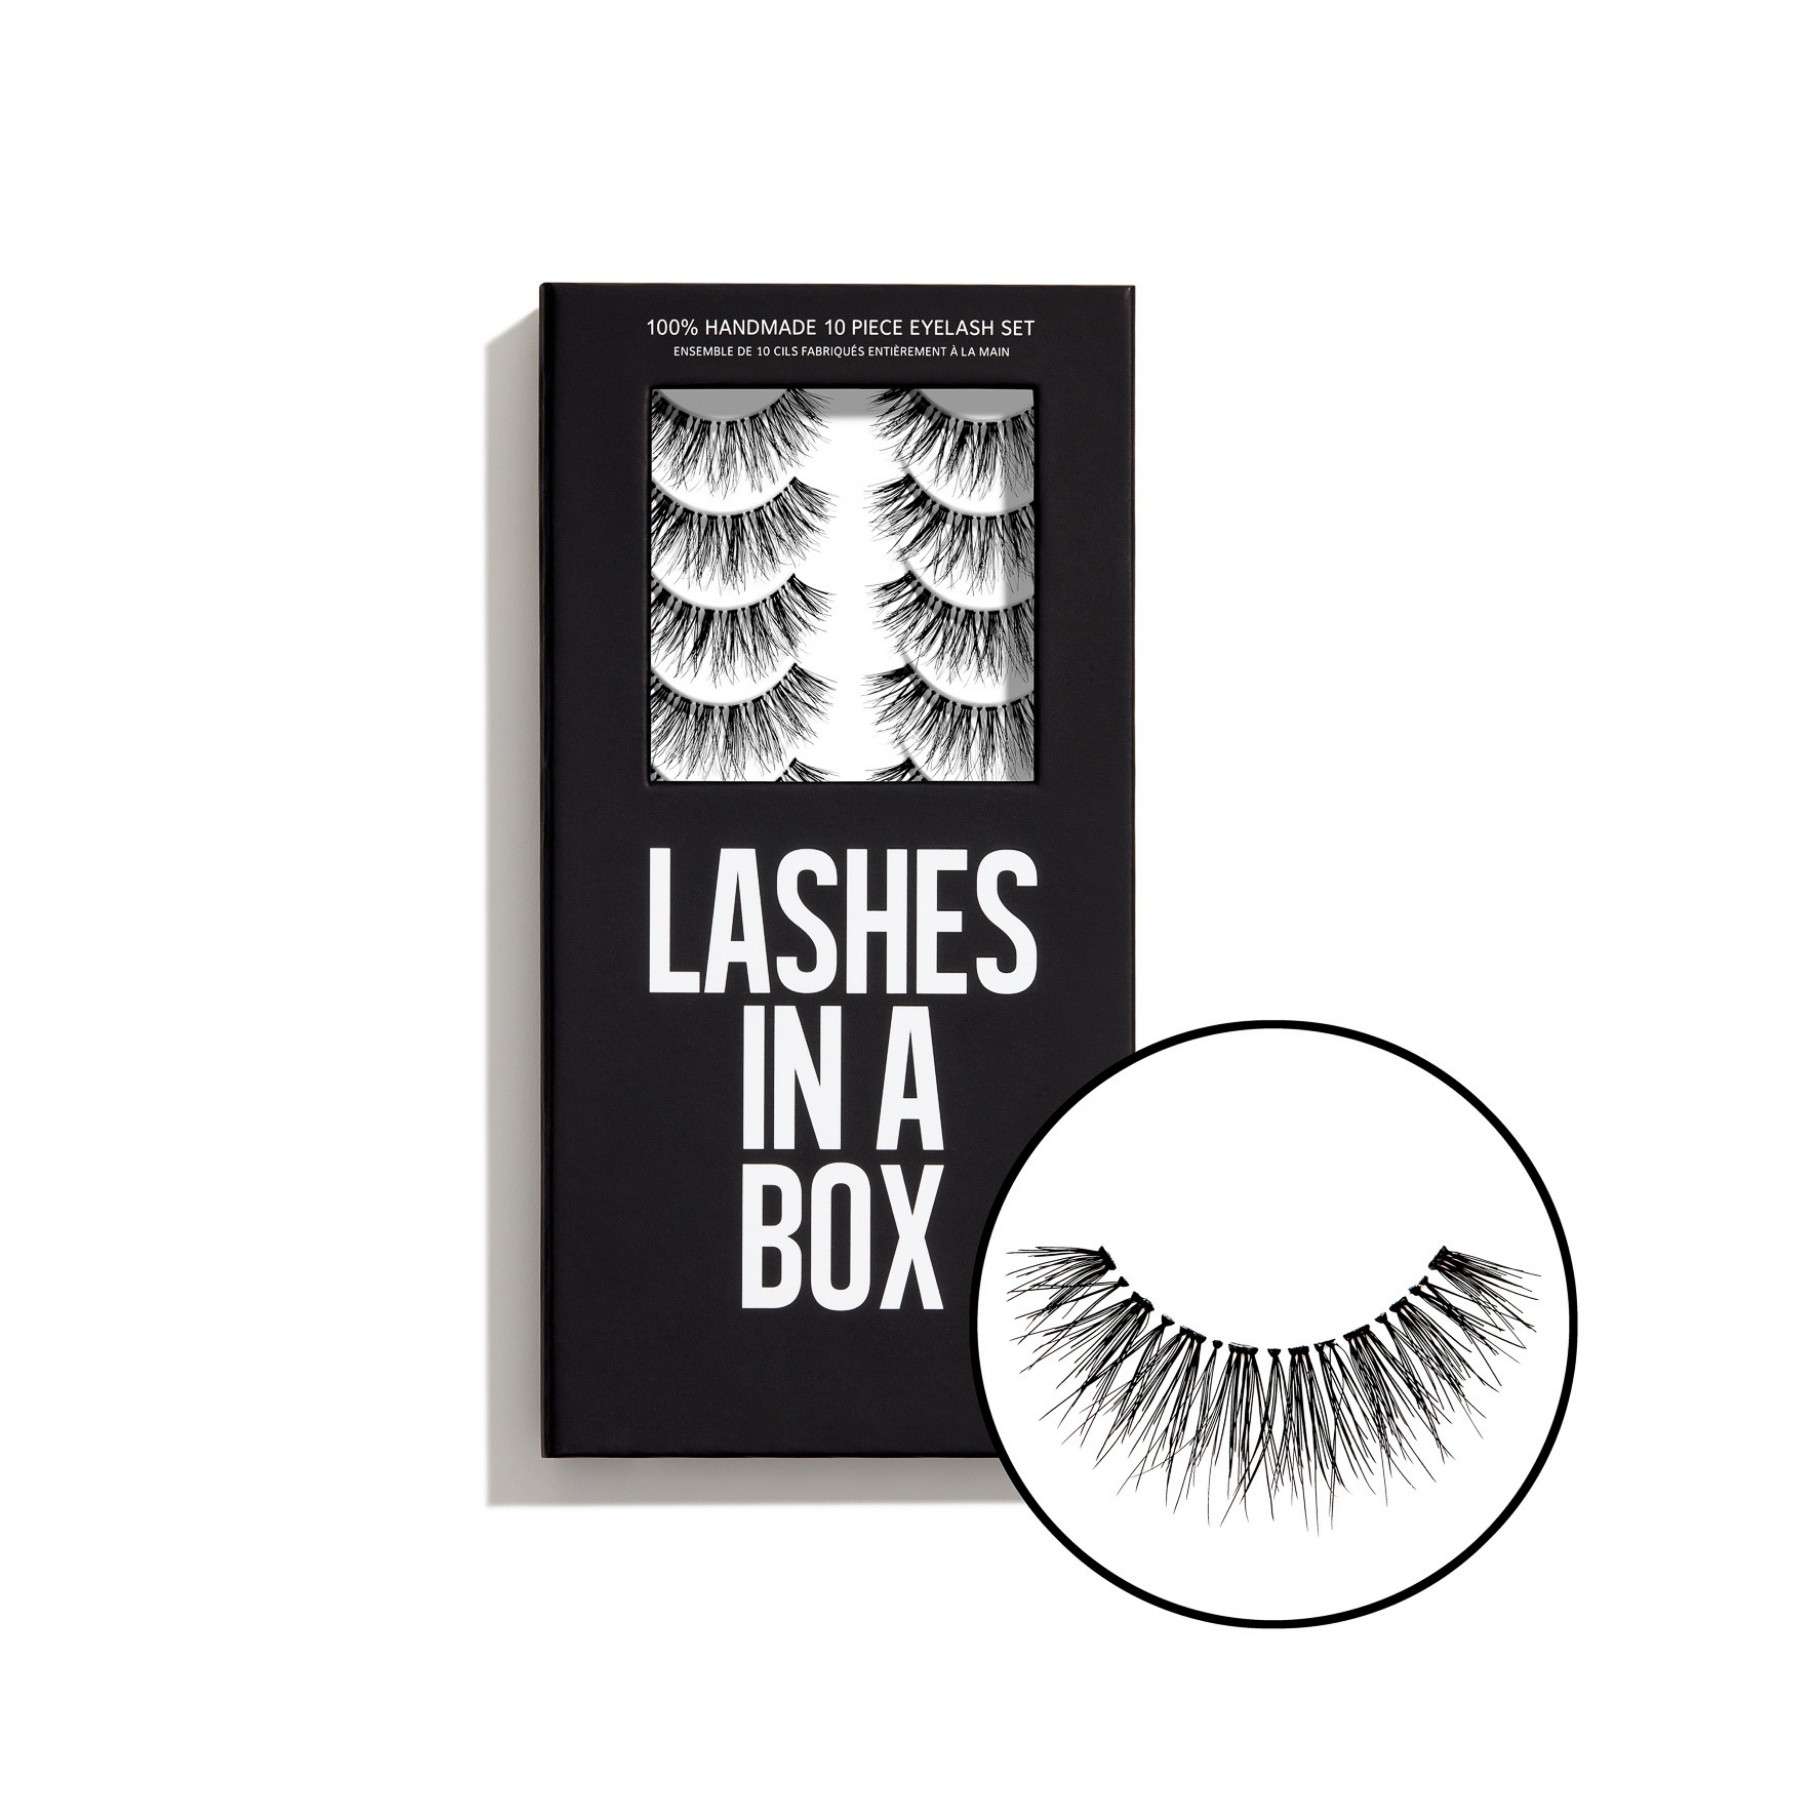 Lashes in a Box No 30 Ten Piece Eyelash Set